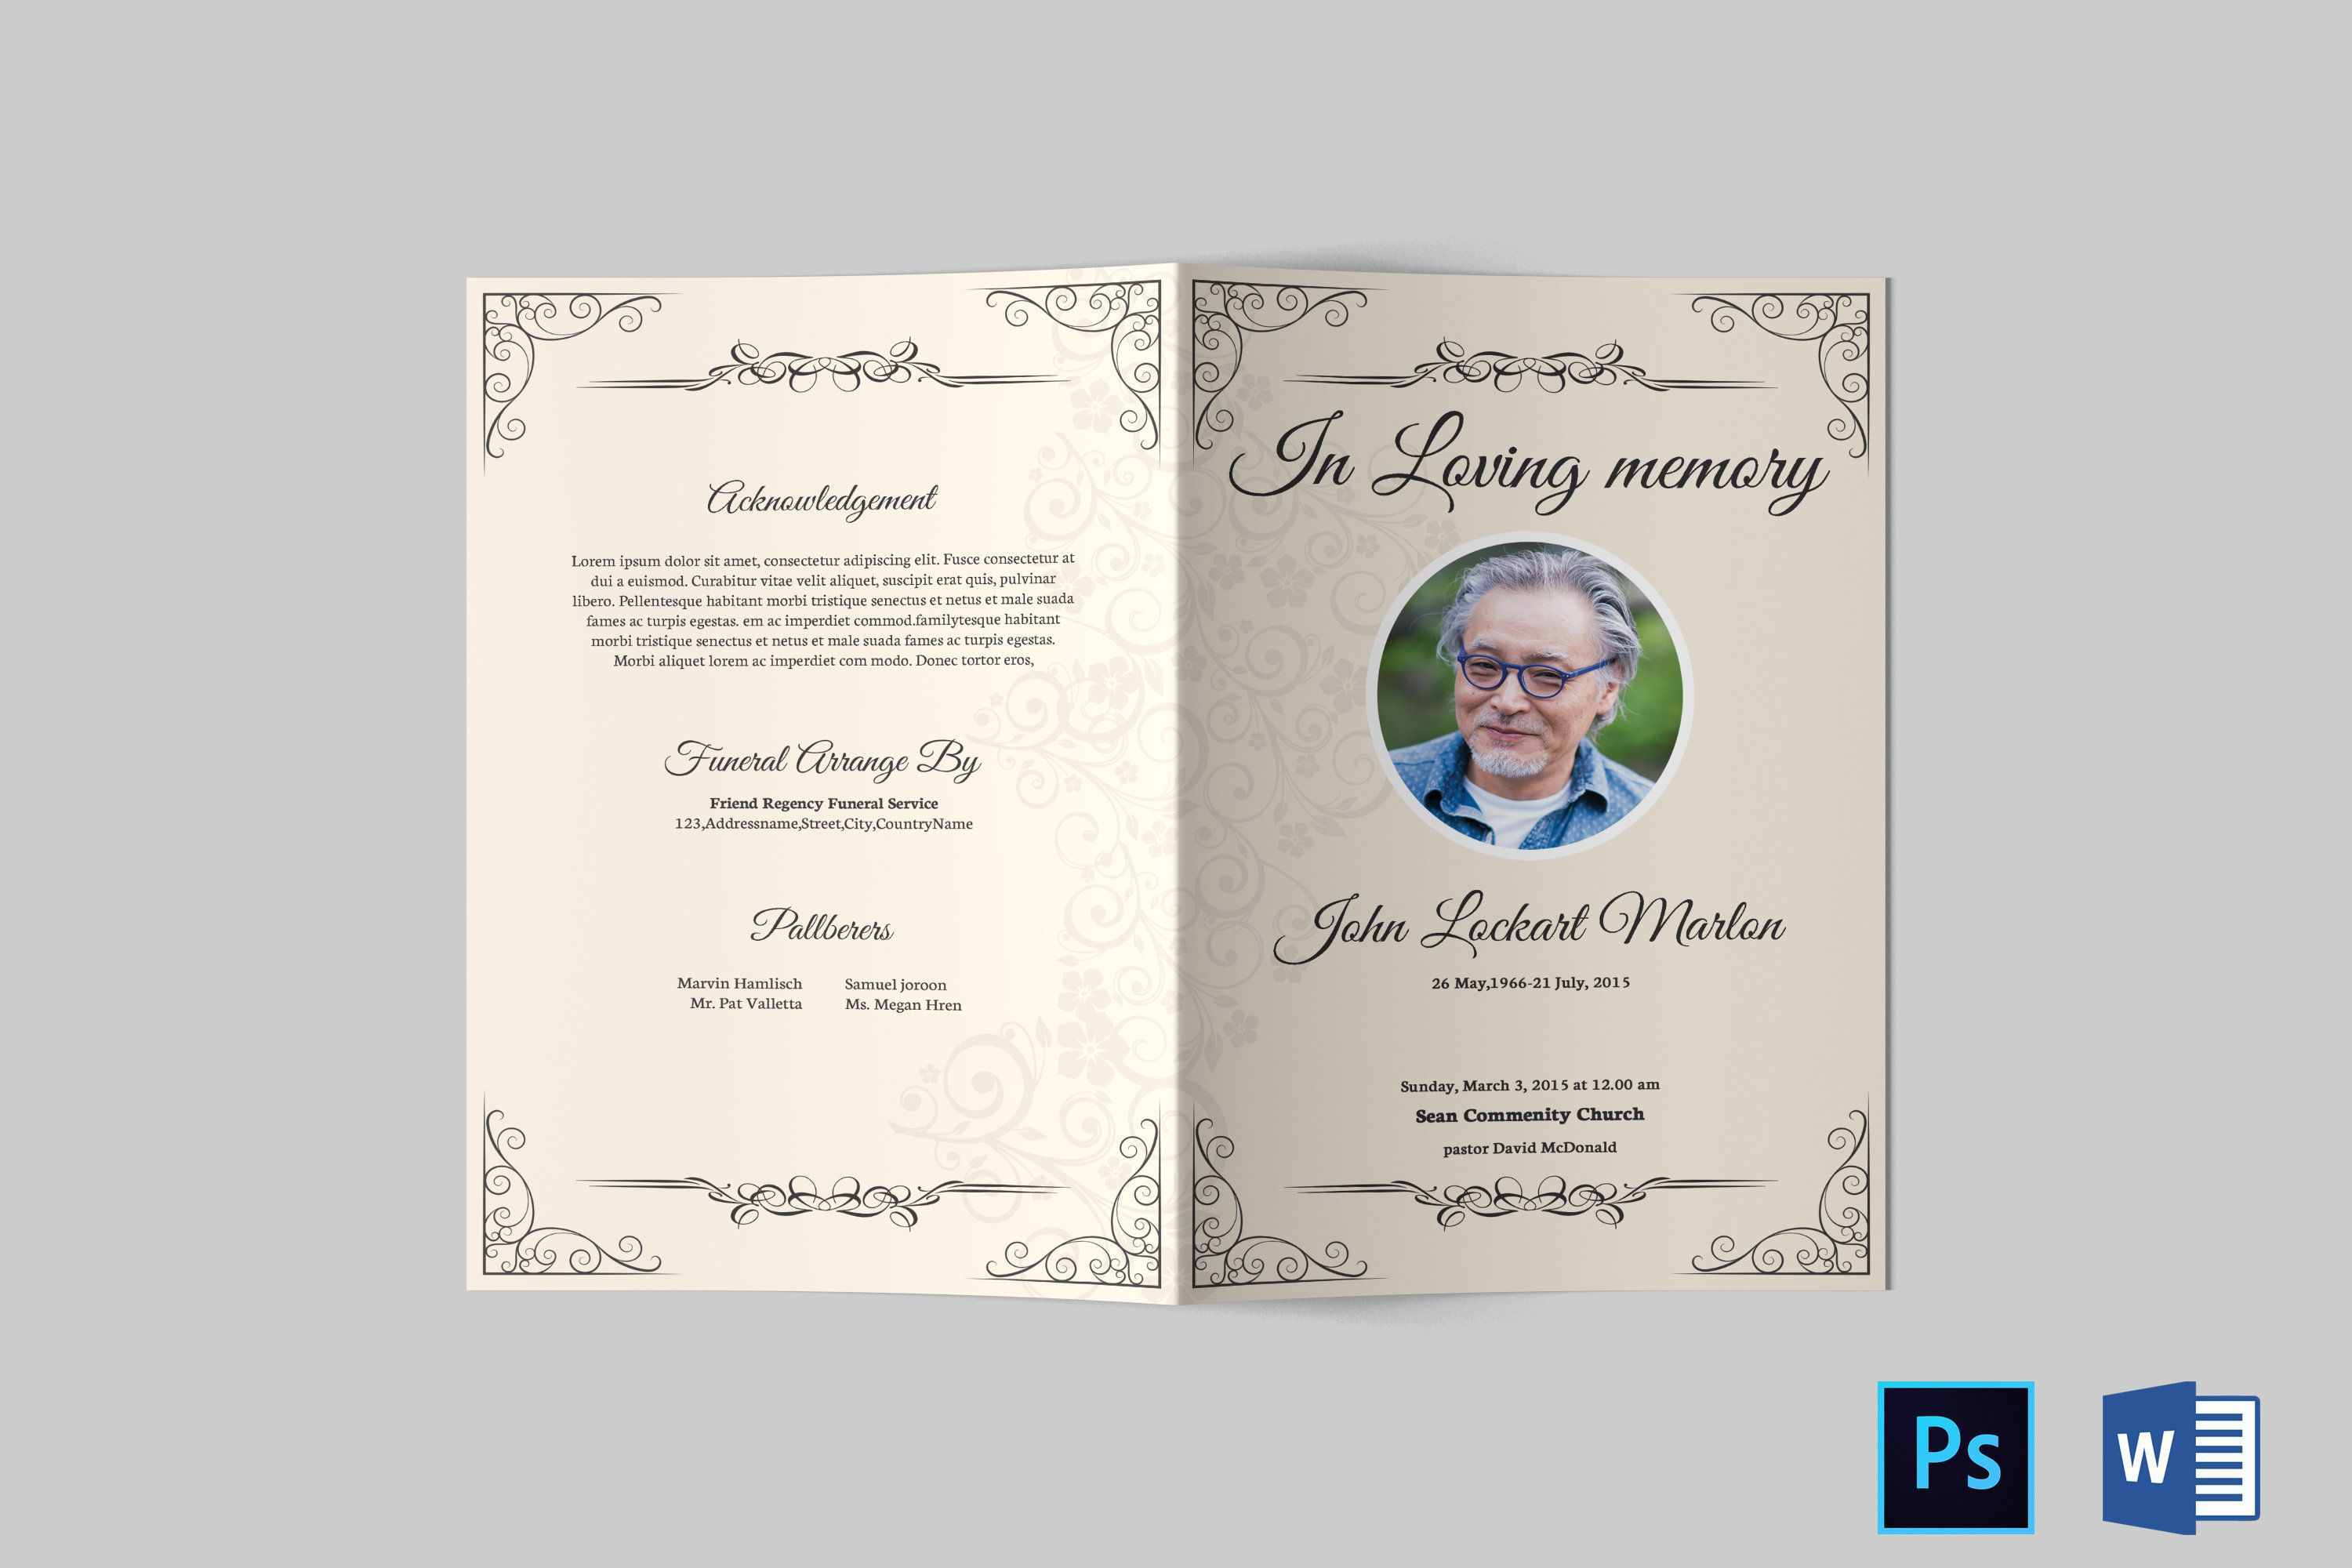 000 Top Template For Funeral Program On Word Photo  2010 Free Sample WordingFull